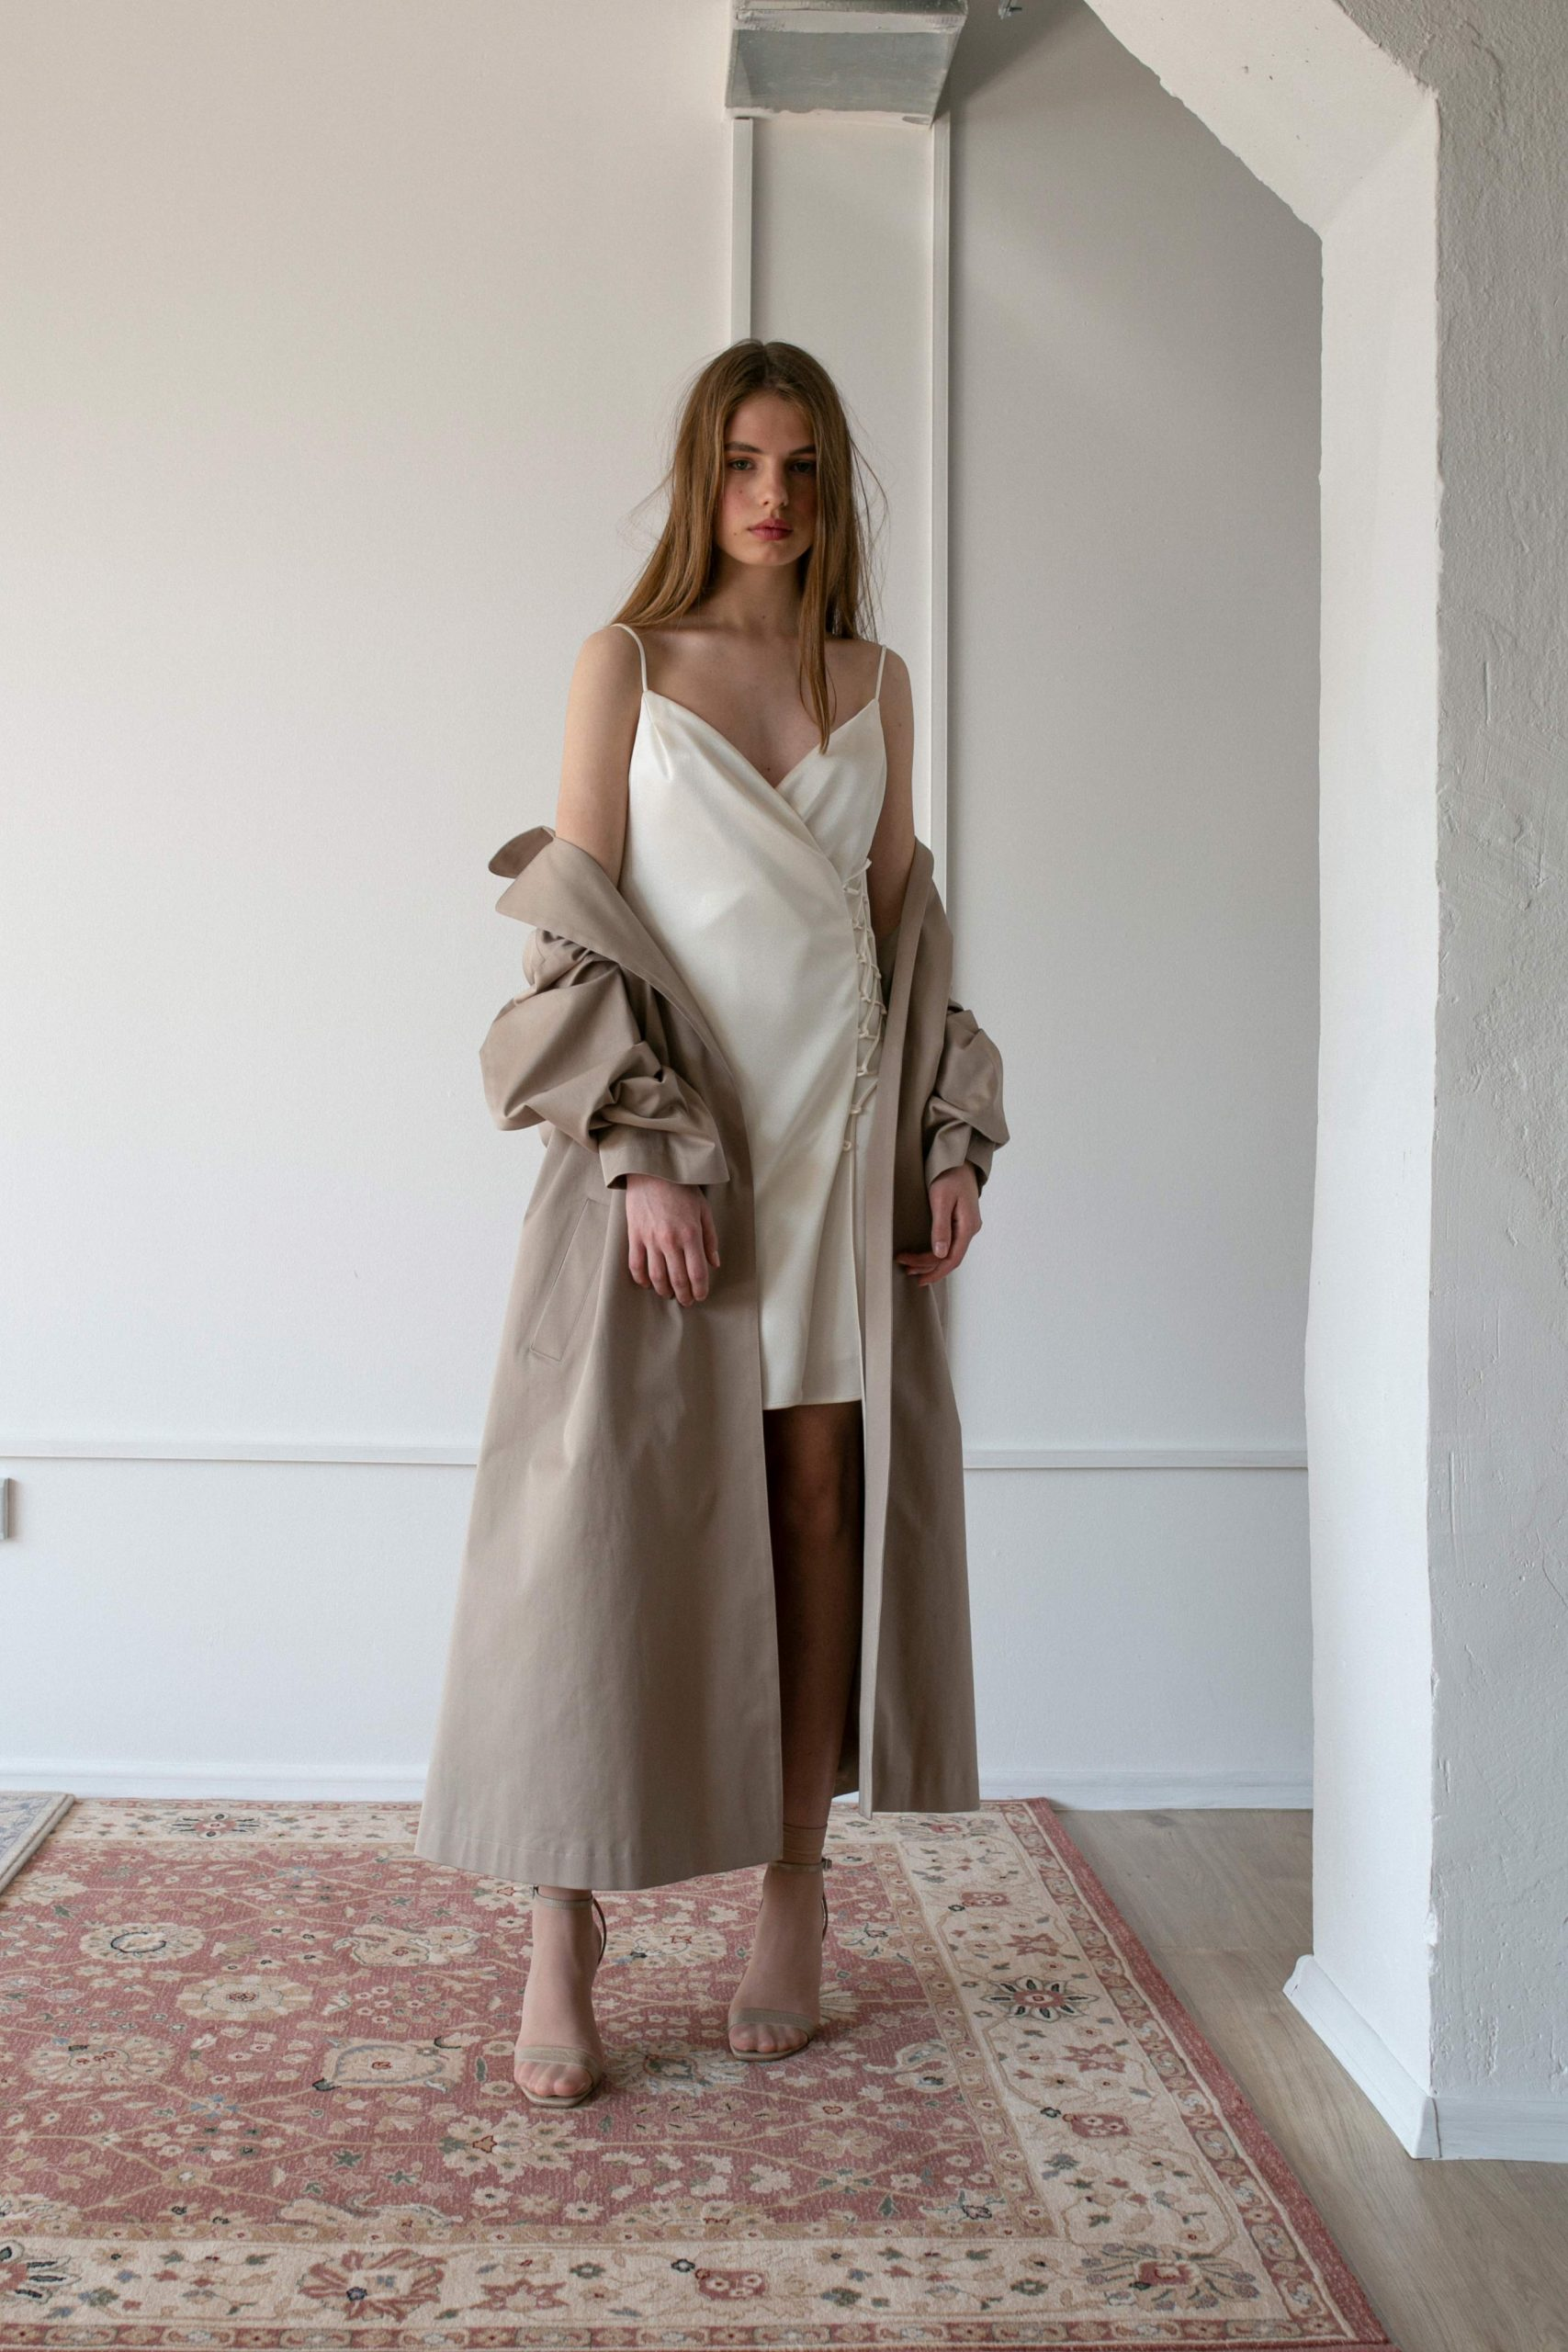 RAQUETTE SS20 - Moondust trench / Starlight cady dress